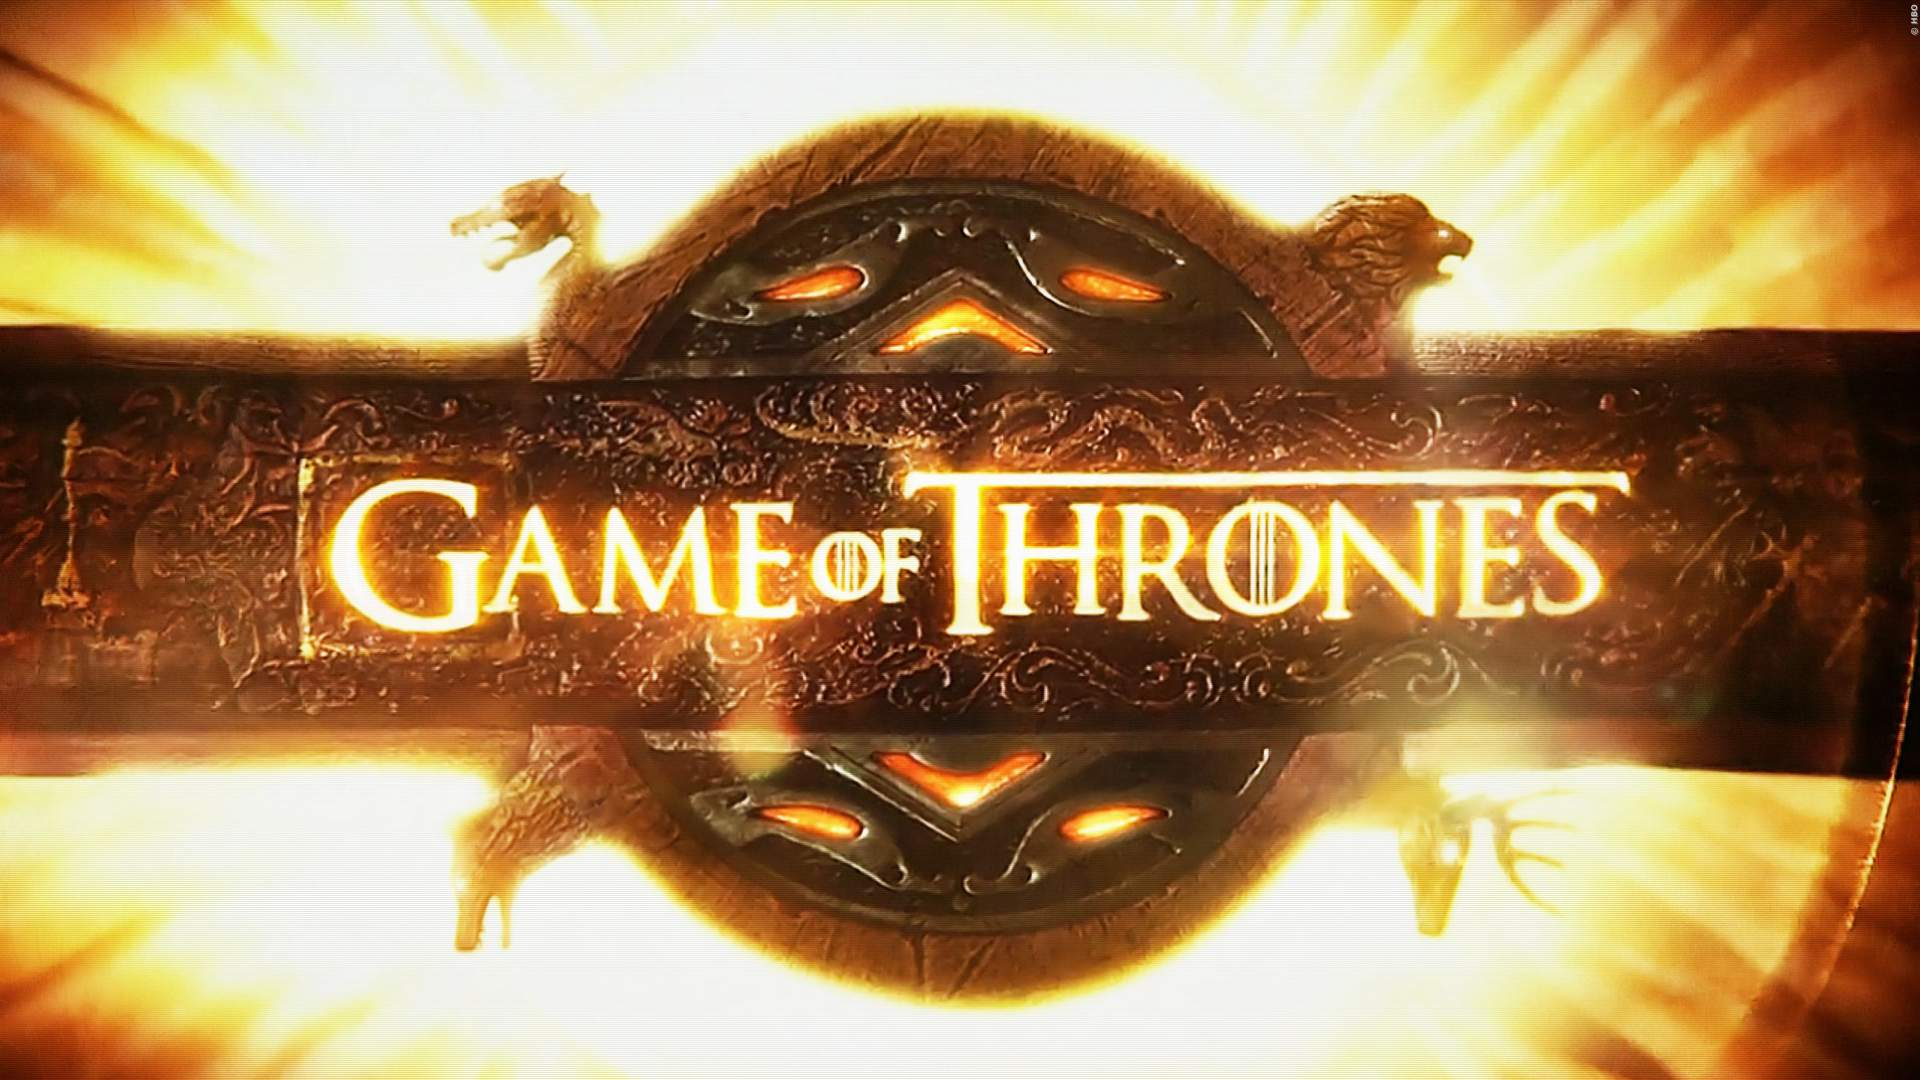 Game Of Thrones Fans by FILM.TV - カバー